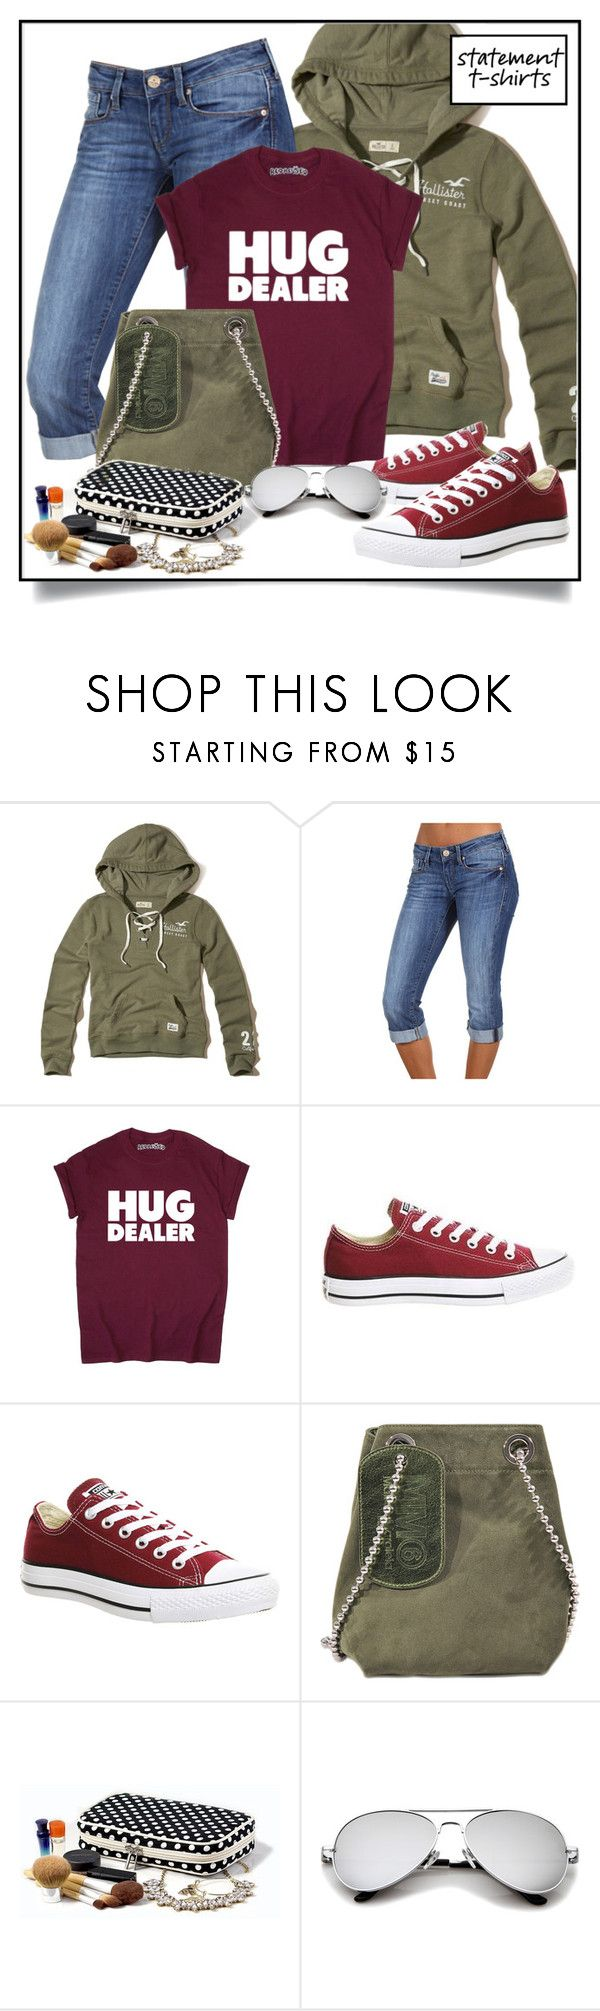 """Hug dealer"" by nicole-christie-mennen ❤ liked on Polyvore featuring Hollister Co., Mavi, Converse and Maison Margiela"